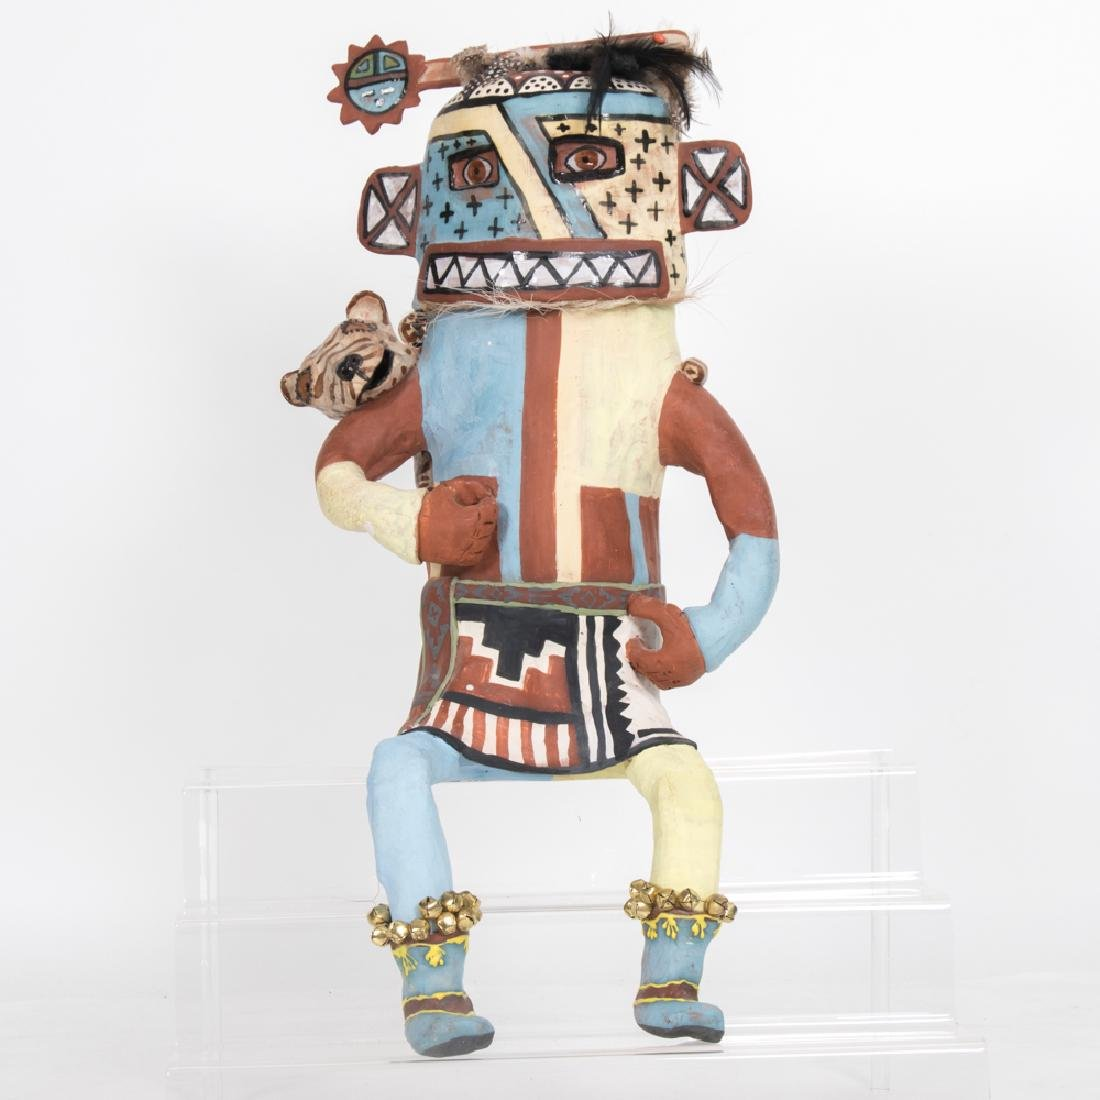 Molly Heizer (b. 1956) Hopi Whipper Kachina Doll,